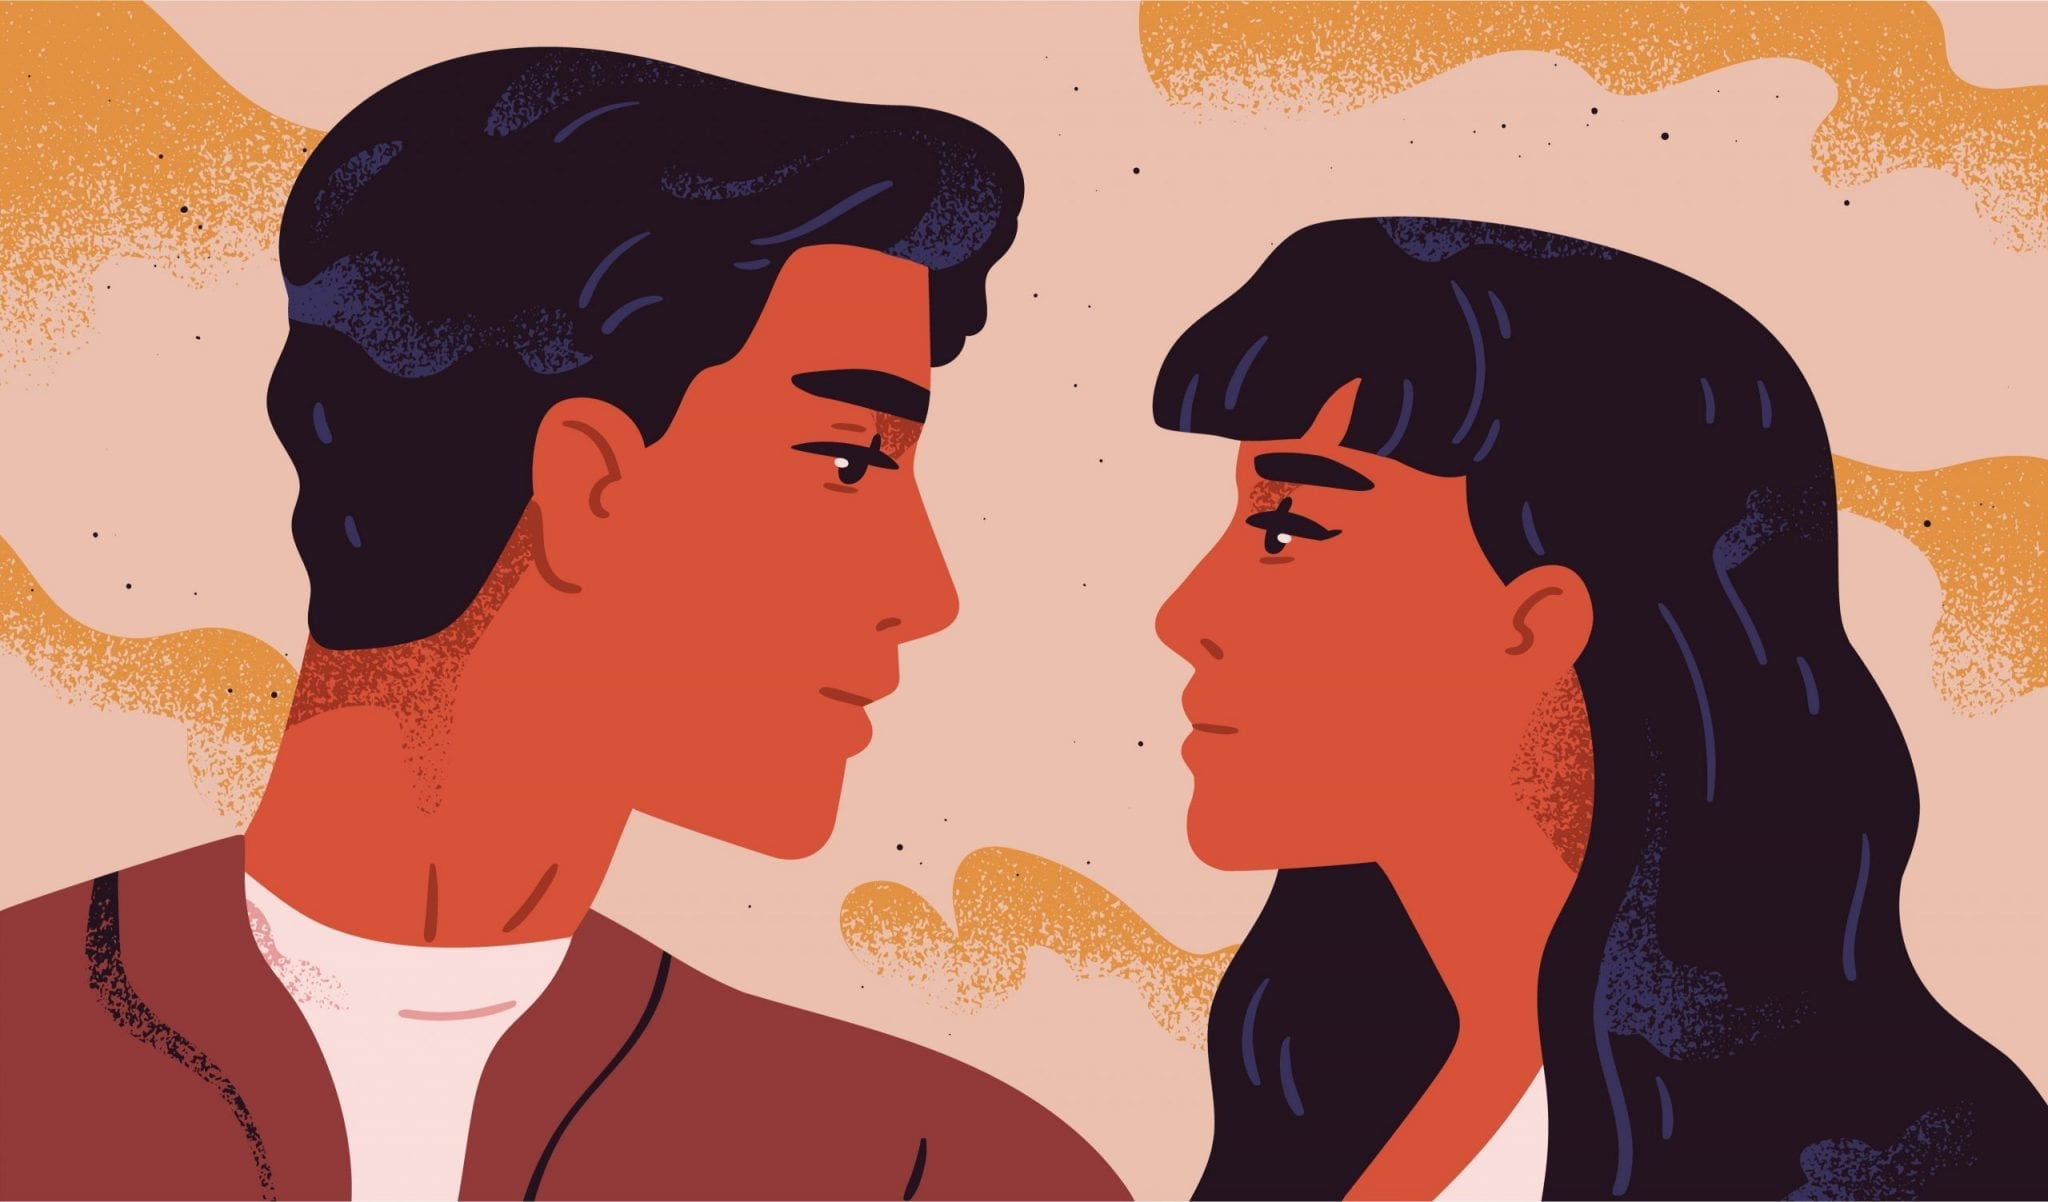 Happy Adorable Couple in Love. Portrait of Young Man and Woman Looking at Each Other. Pair of Romantic Partners on a Date. Boyfriend and Girlfriend